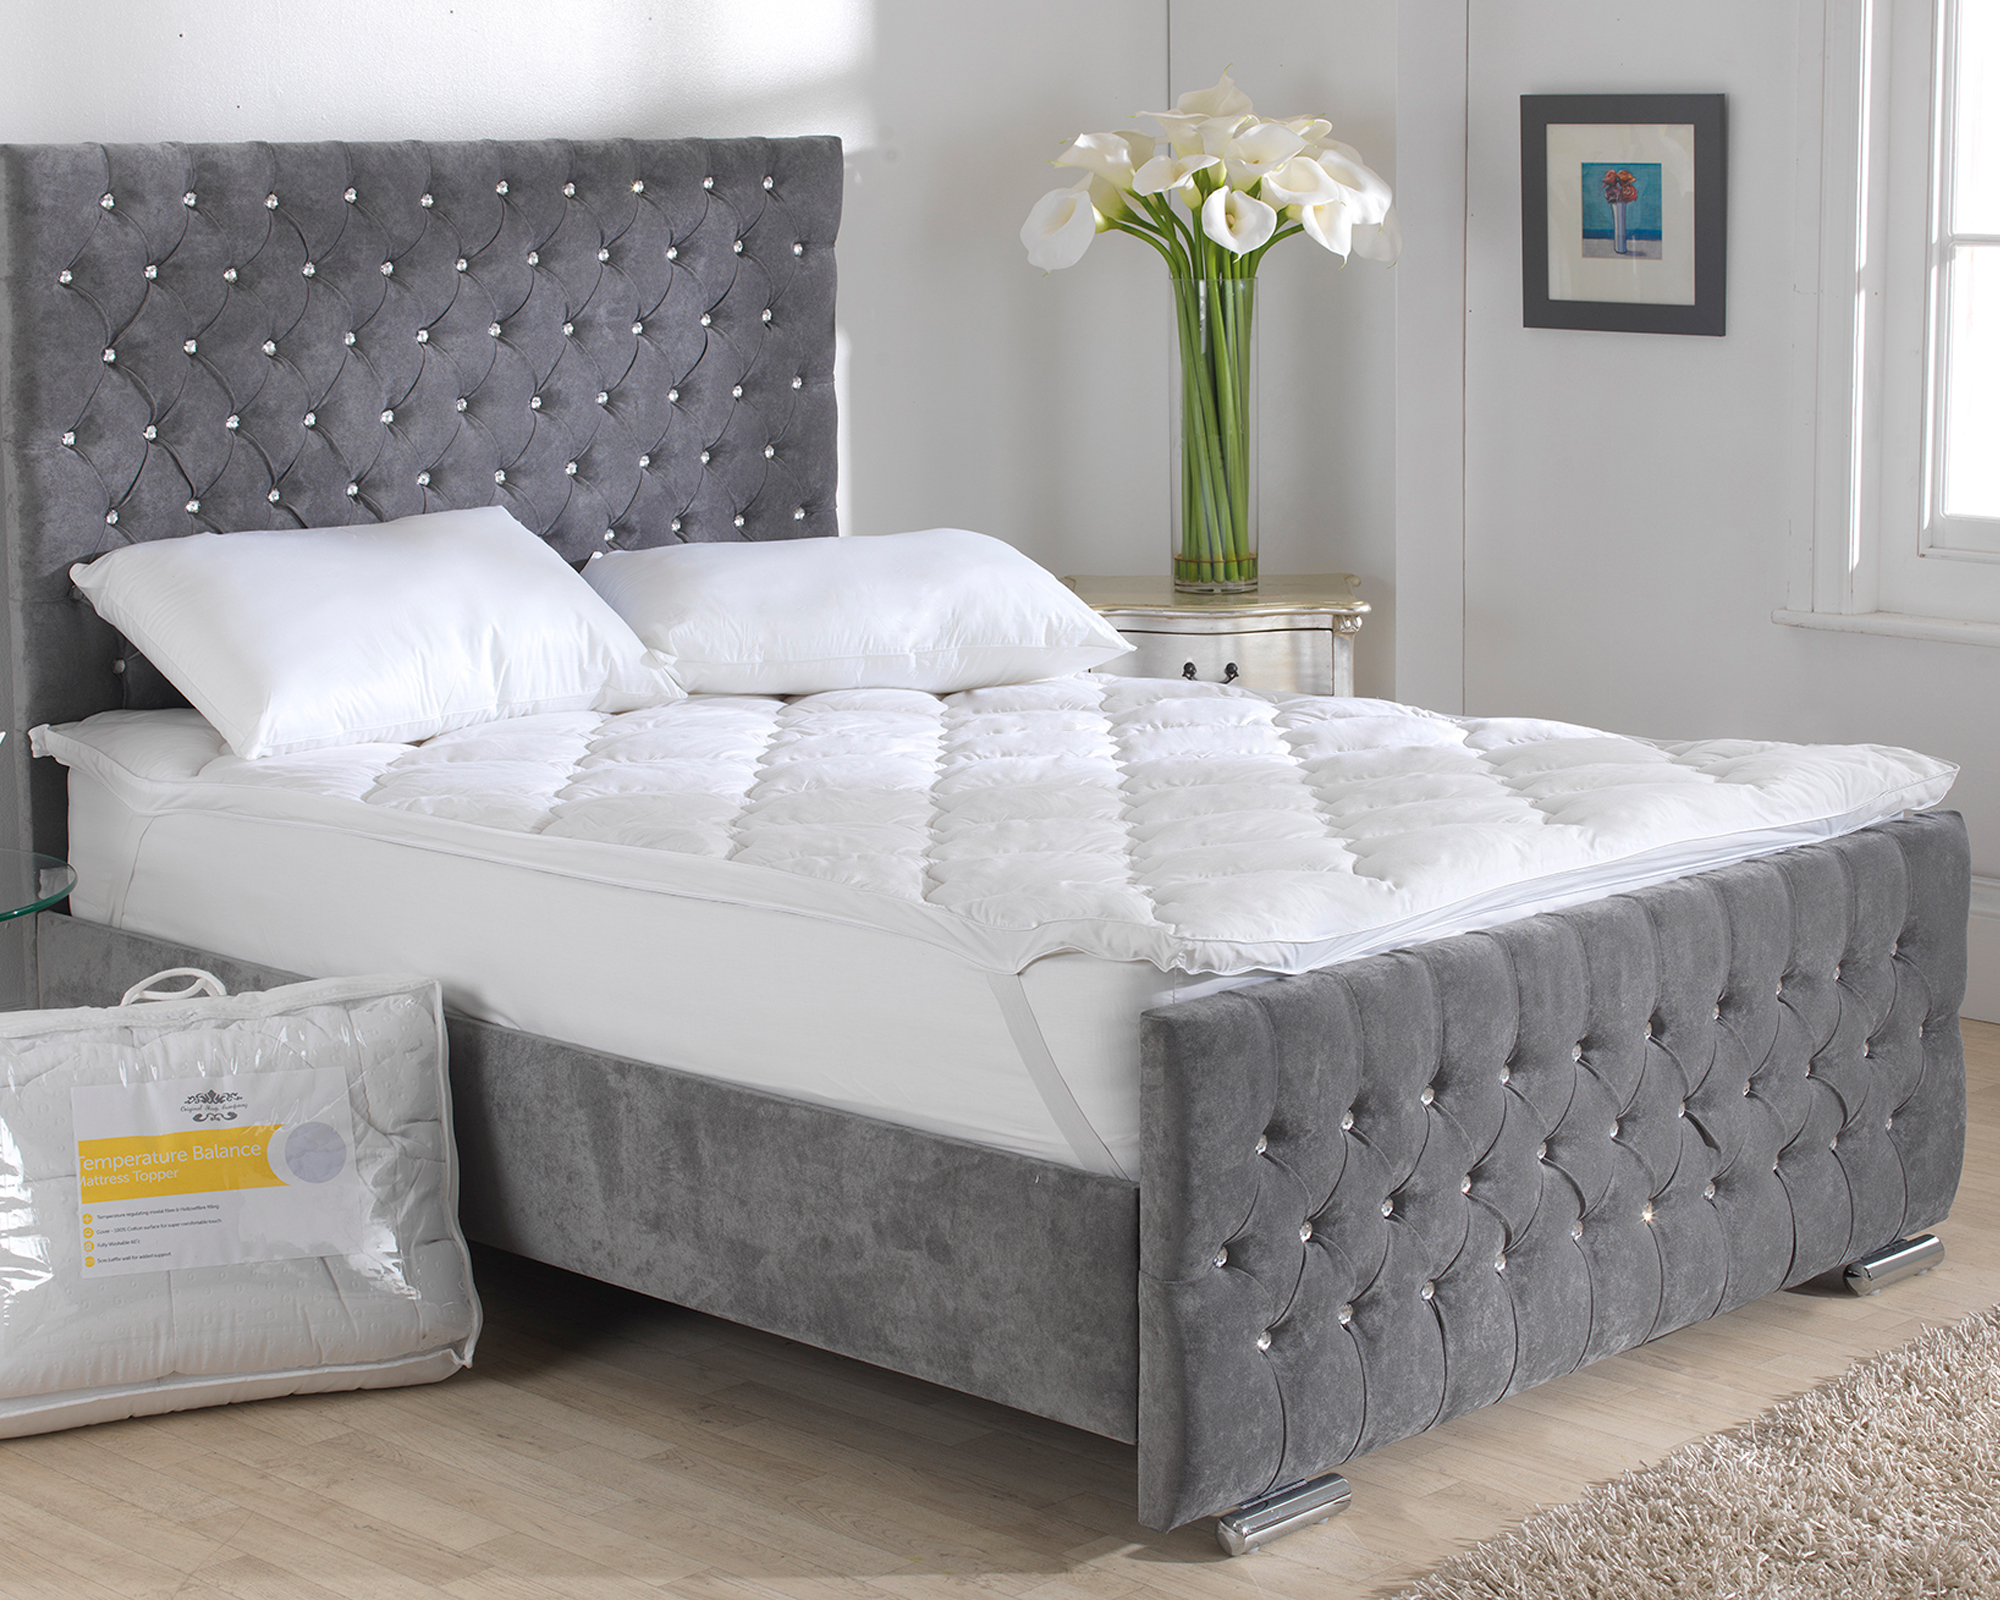 topper bed airmax mattress silentnight main square